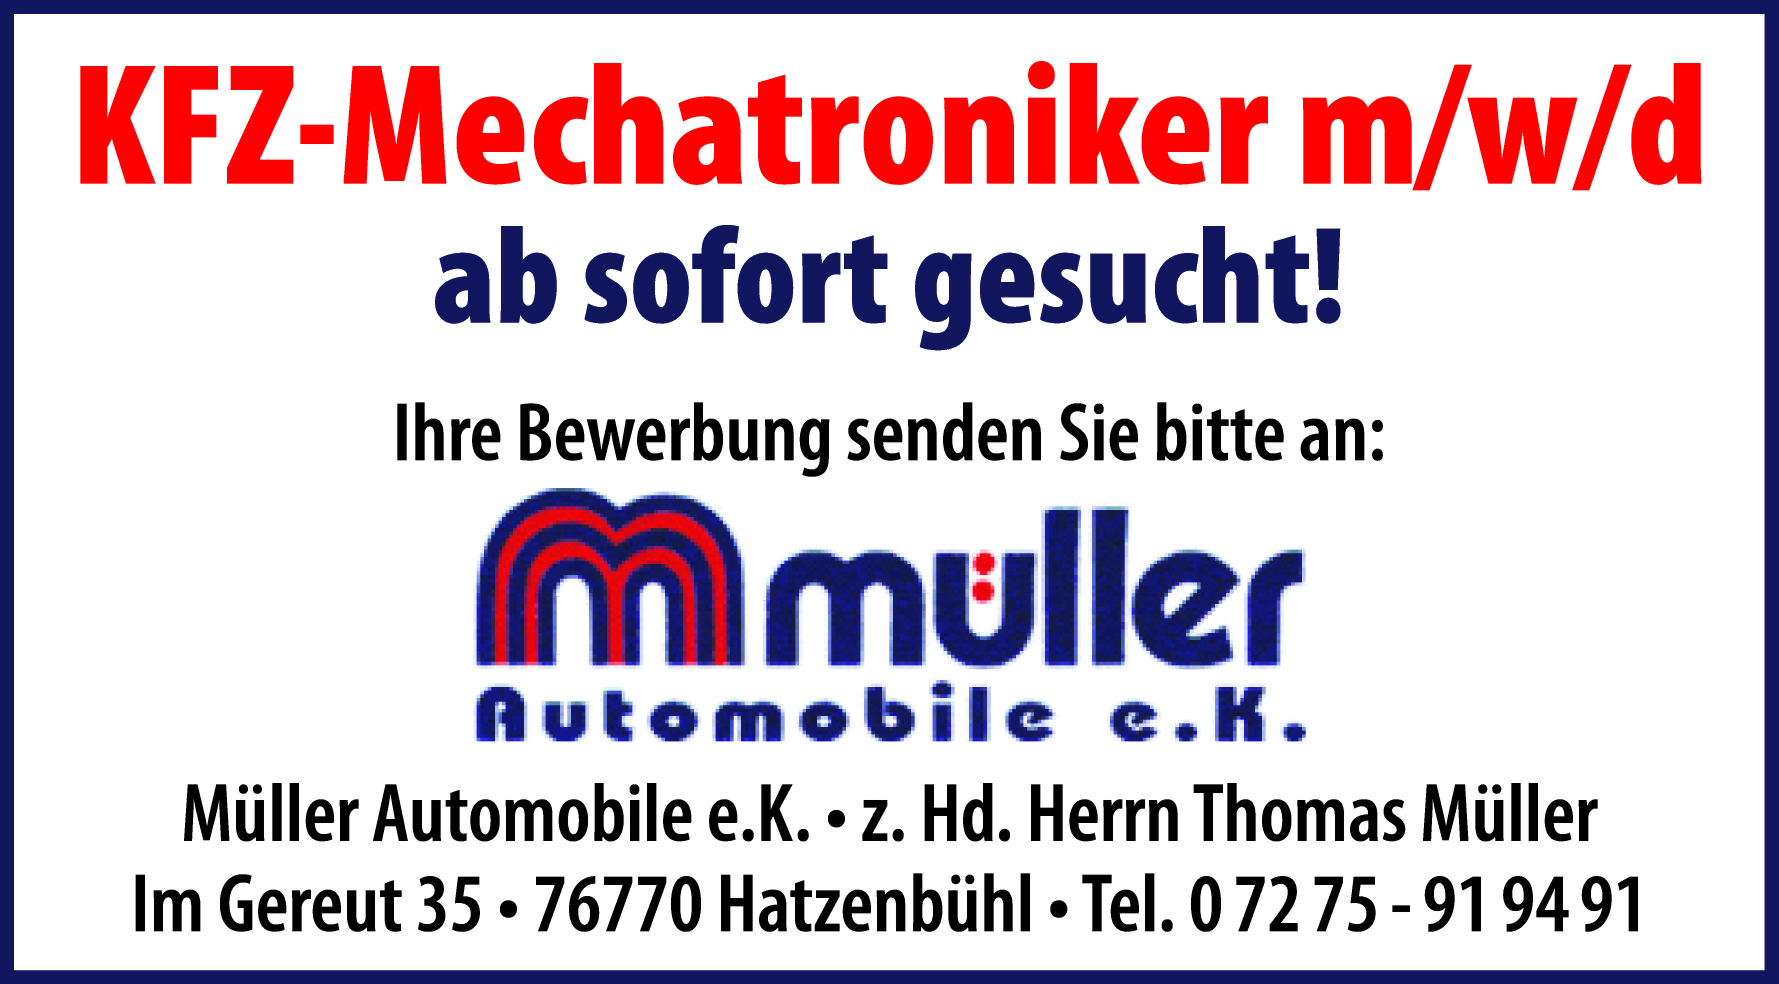 Müller Automobile e.K.